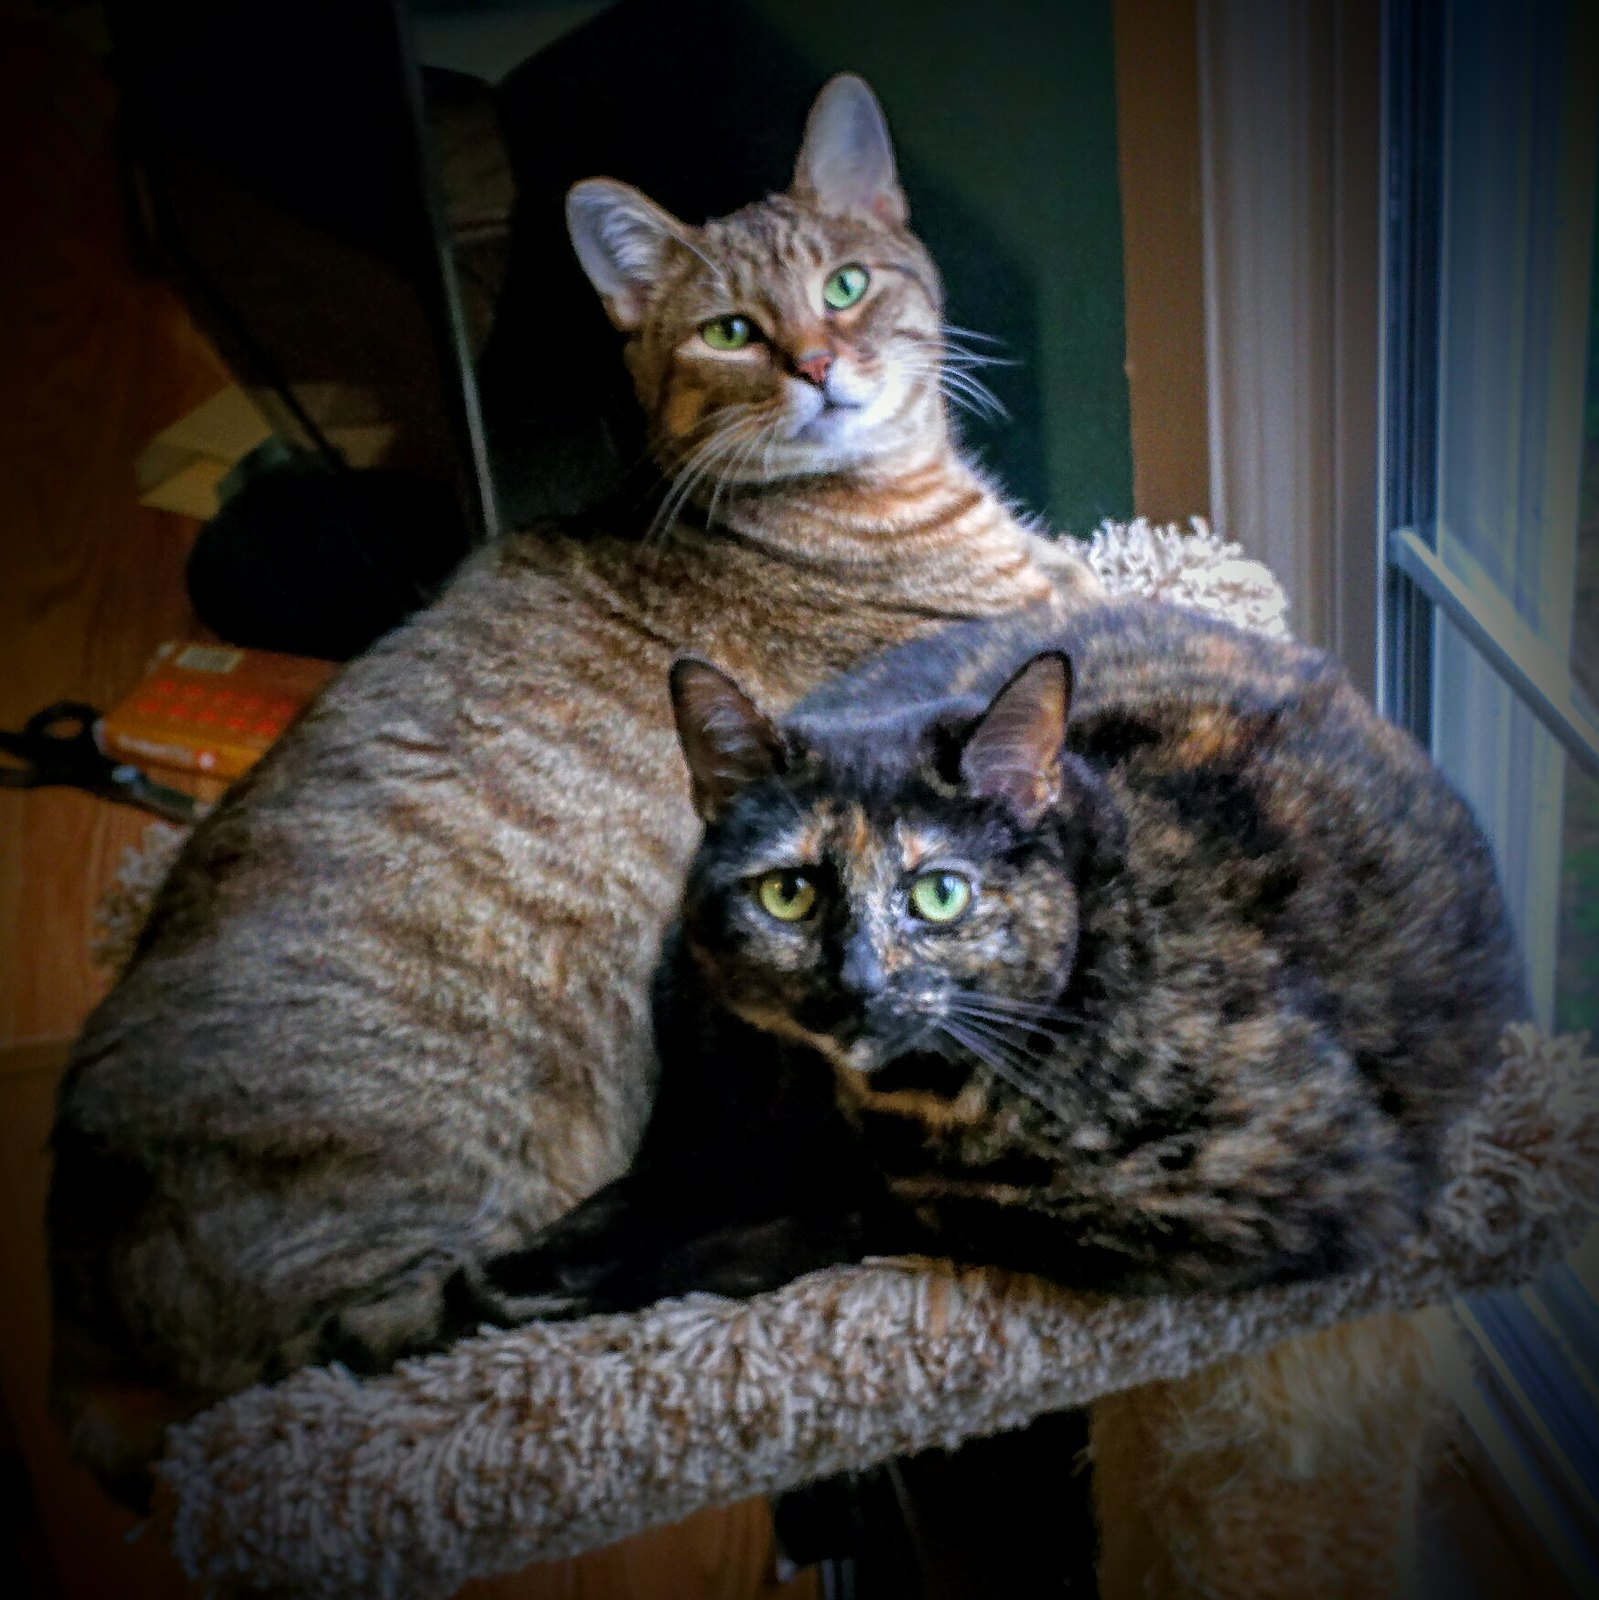 Buster and Lucille share a moment on the perch together